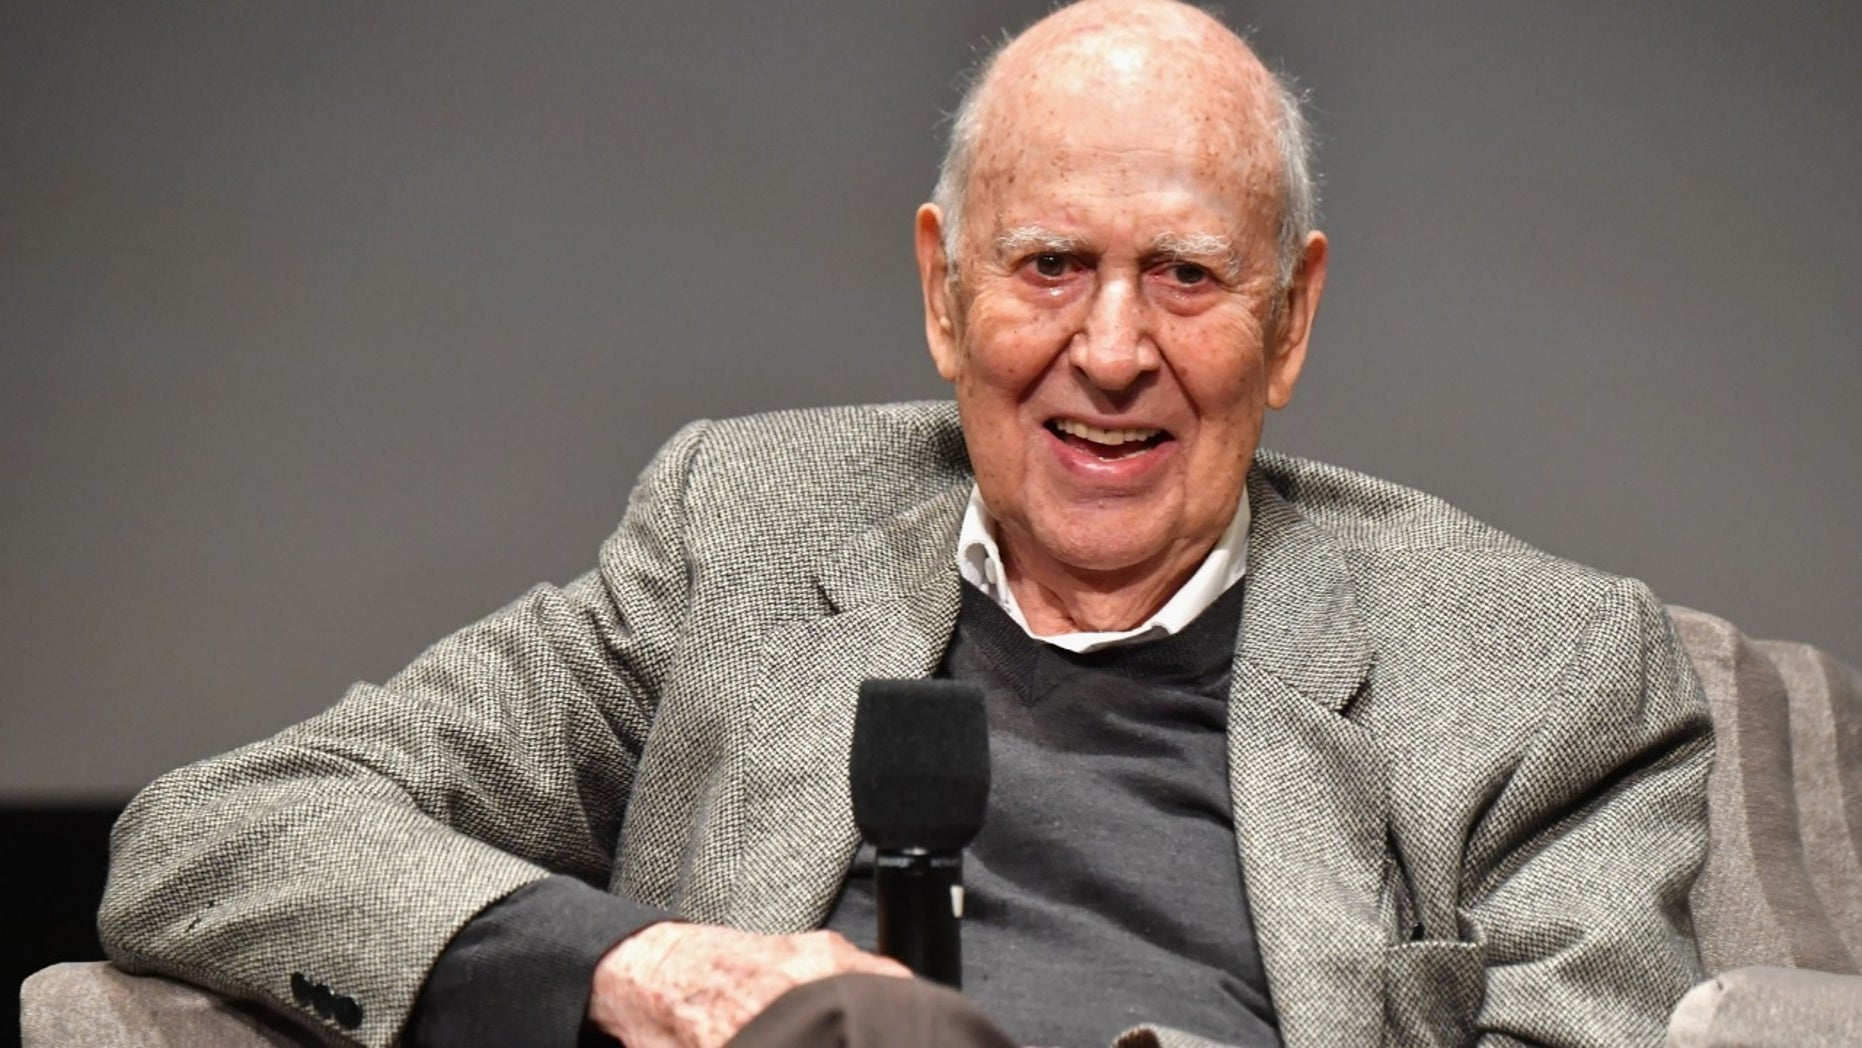 Carl Reiner said his personal goal was to live to 2020 in order to vote President Trump out of office.